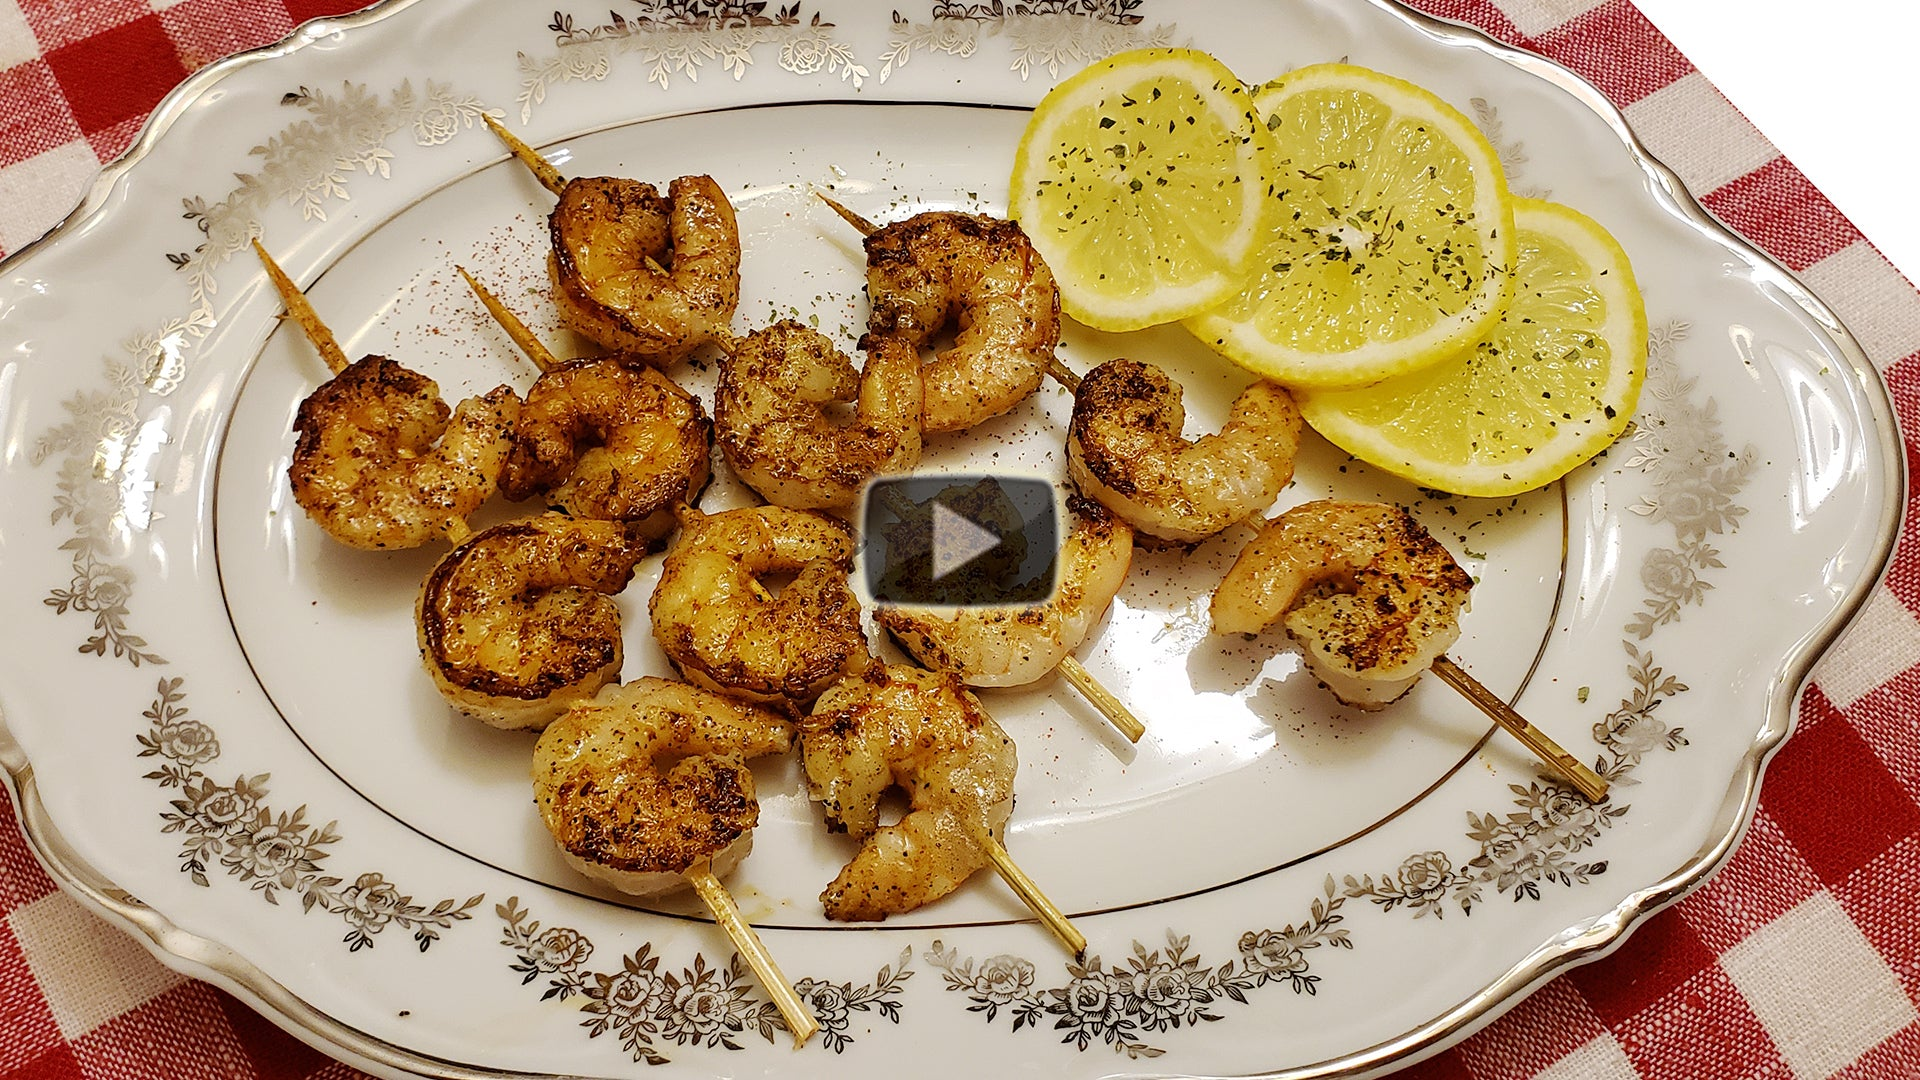 Blackened Shrimp Appetizers